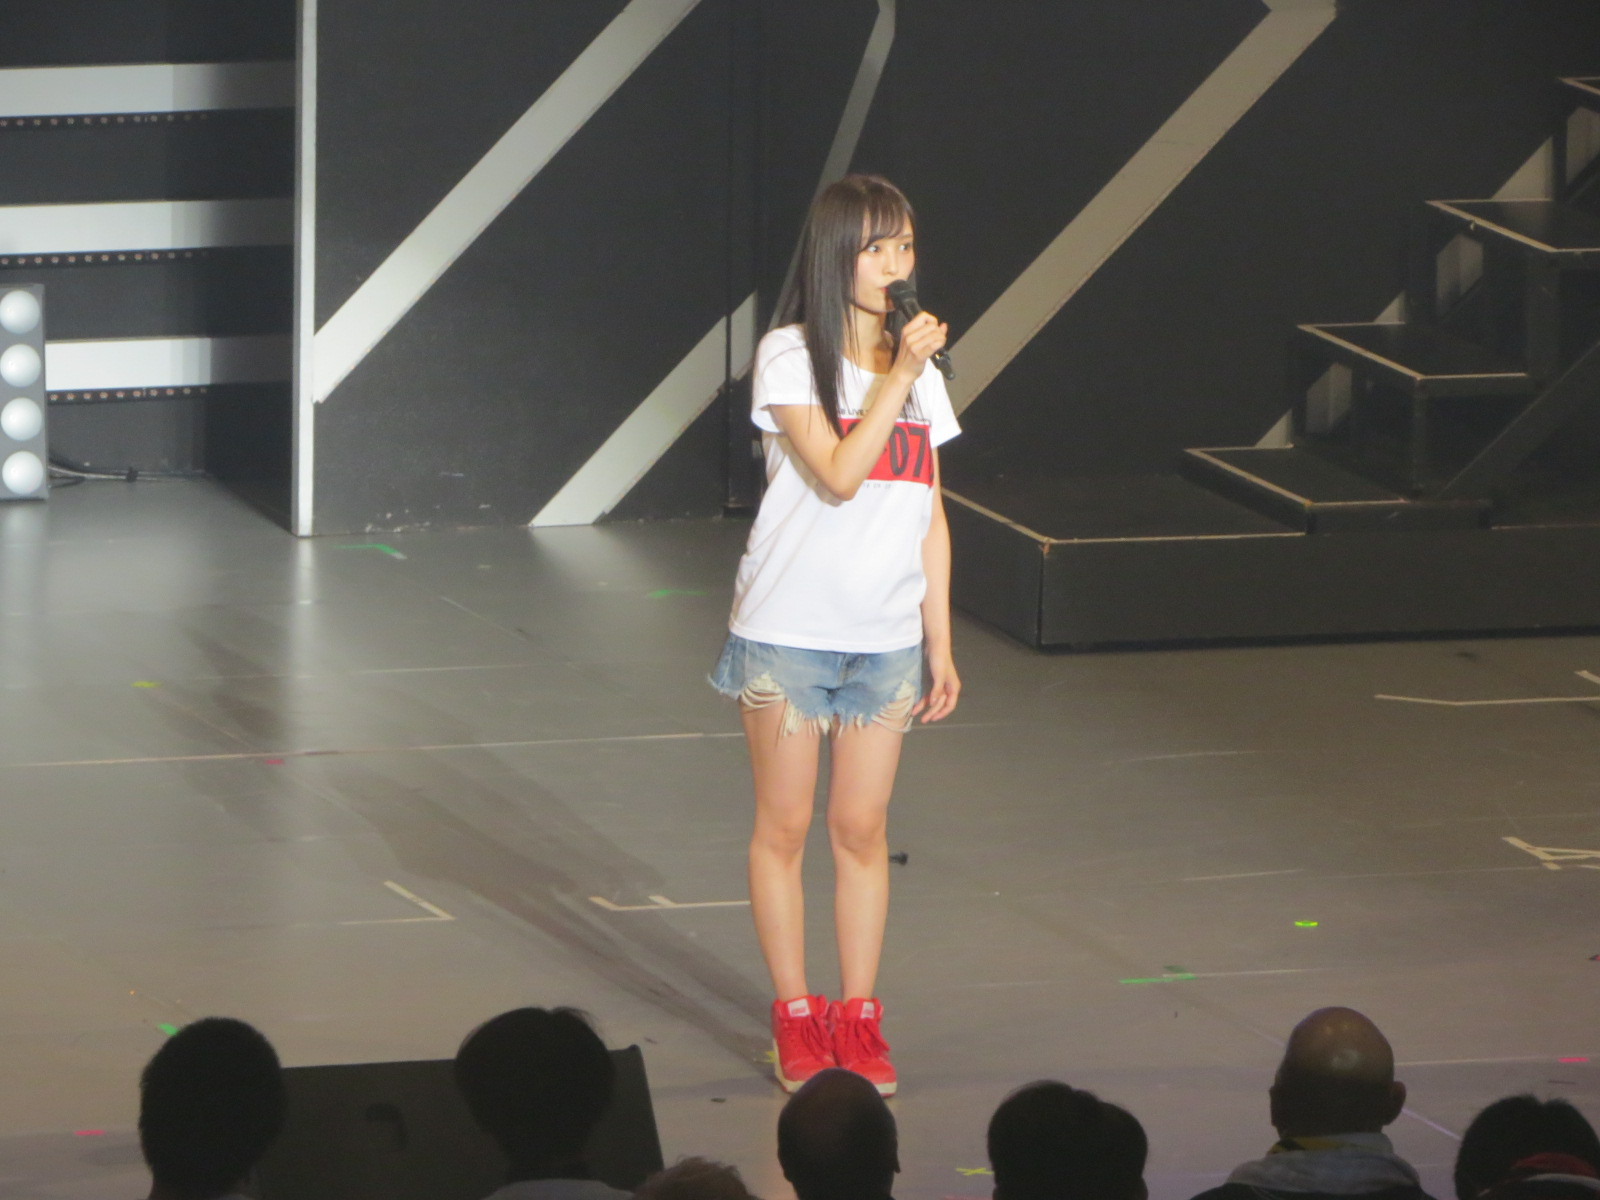 NMB48 LIVE TOUR 2018 in Summer・石川公演の画像-137